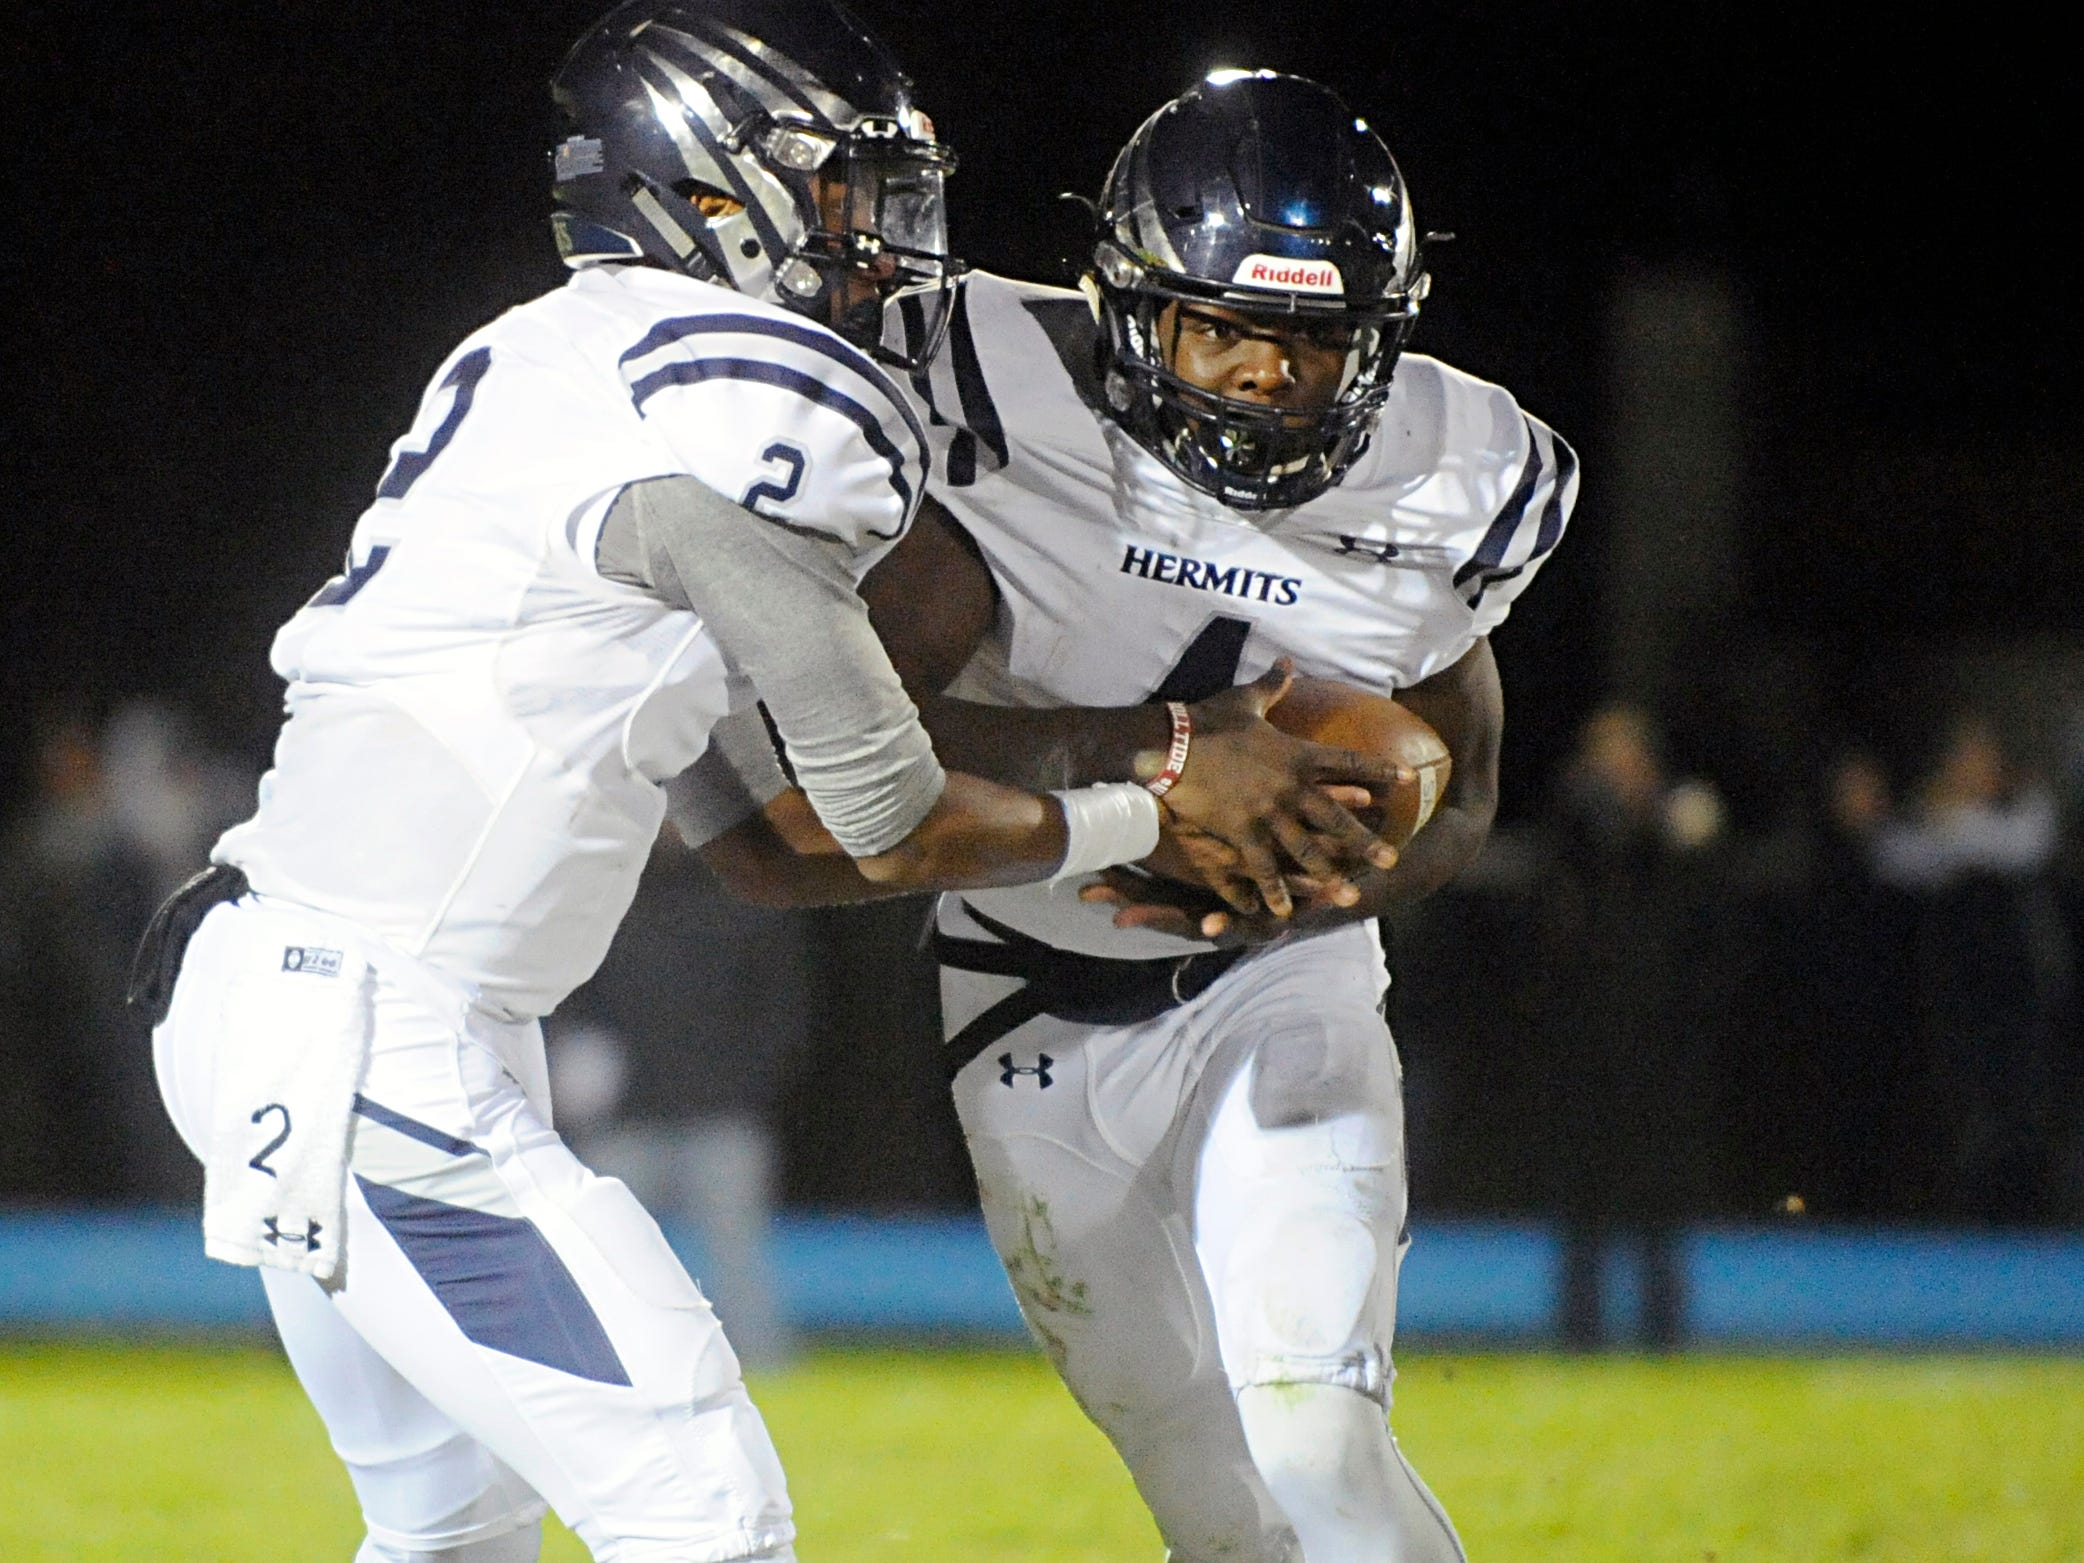 St. Augustine's QB Chris Allen hands the ball off to Nasir Hill during a game against Williamstown. The Braves topped the Hermits, 14-7, on Friday, October 26, 2018.